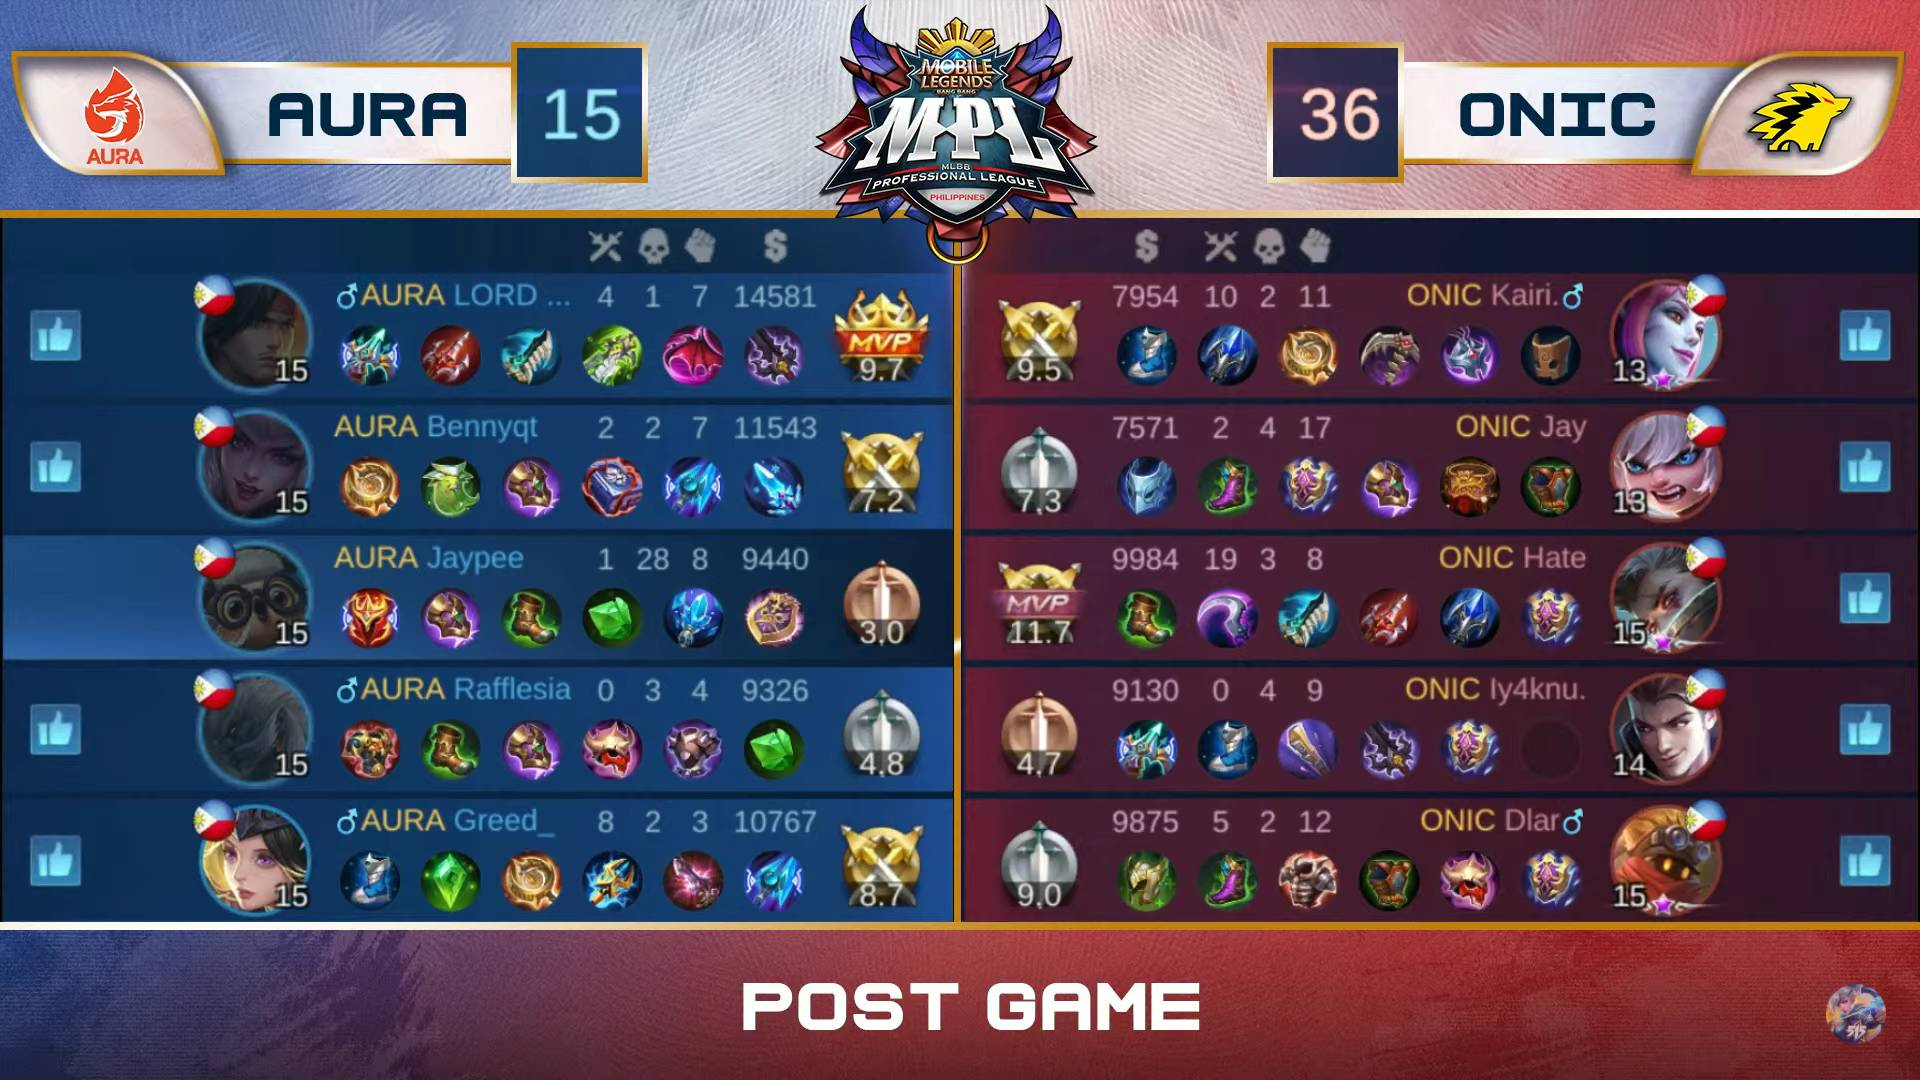 MPL-PH-7-Aura-def-ONIC-Game-1 Jaypee displays new facet, leads Aura past rivals ONIC in MPL PH ESports Mobile Legends MPL-PH News  - philippine sports news